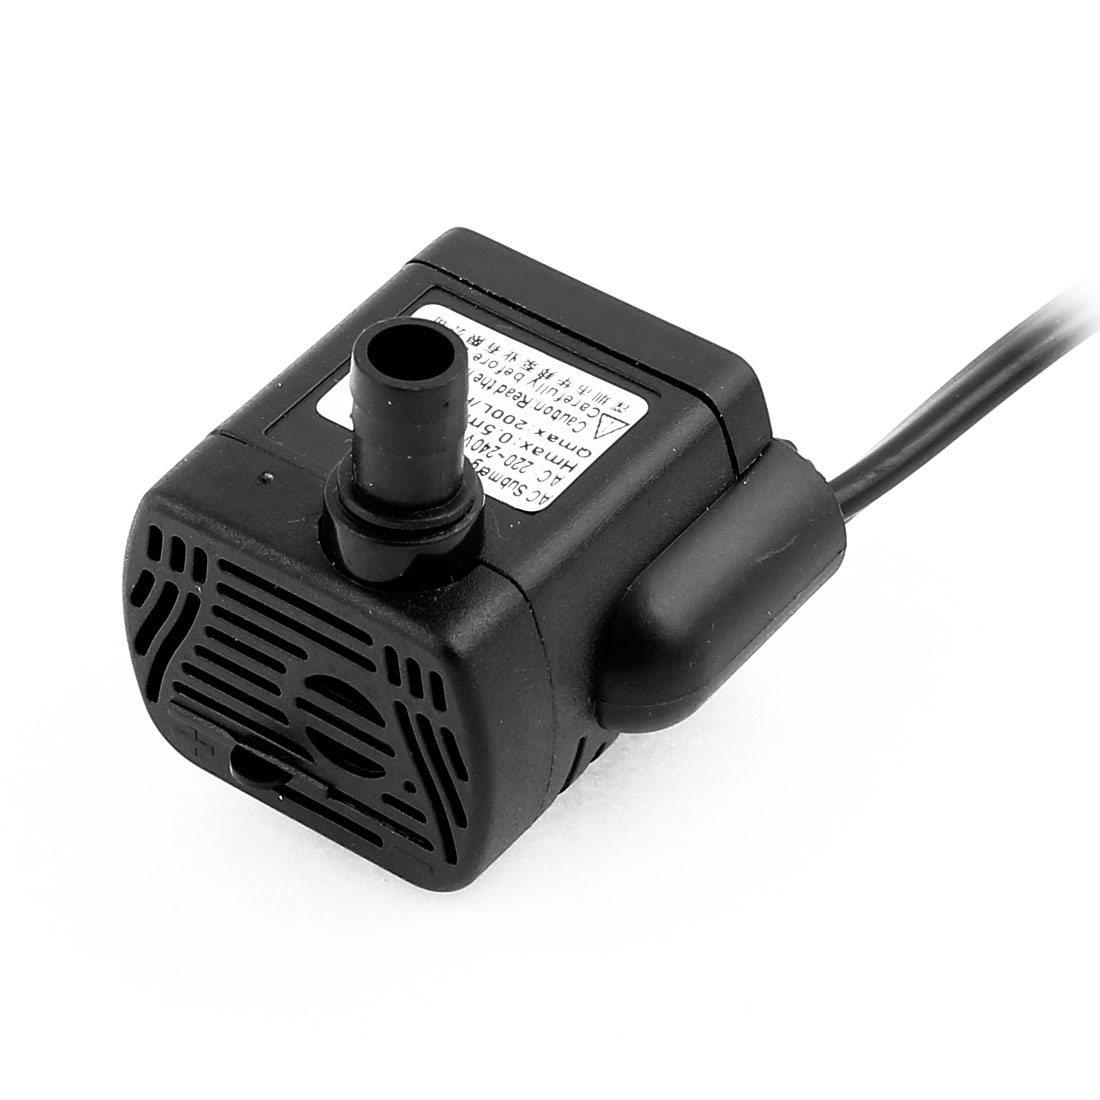 AC 220V-240V AU Plug 3W Electric Mini Submersible Water Pump for Aquarium Fish Tank Fountain Pond